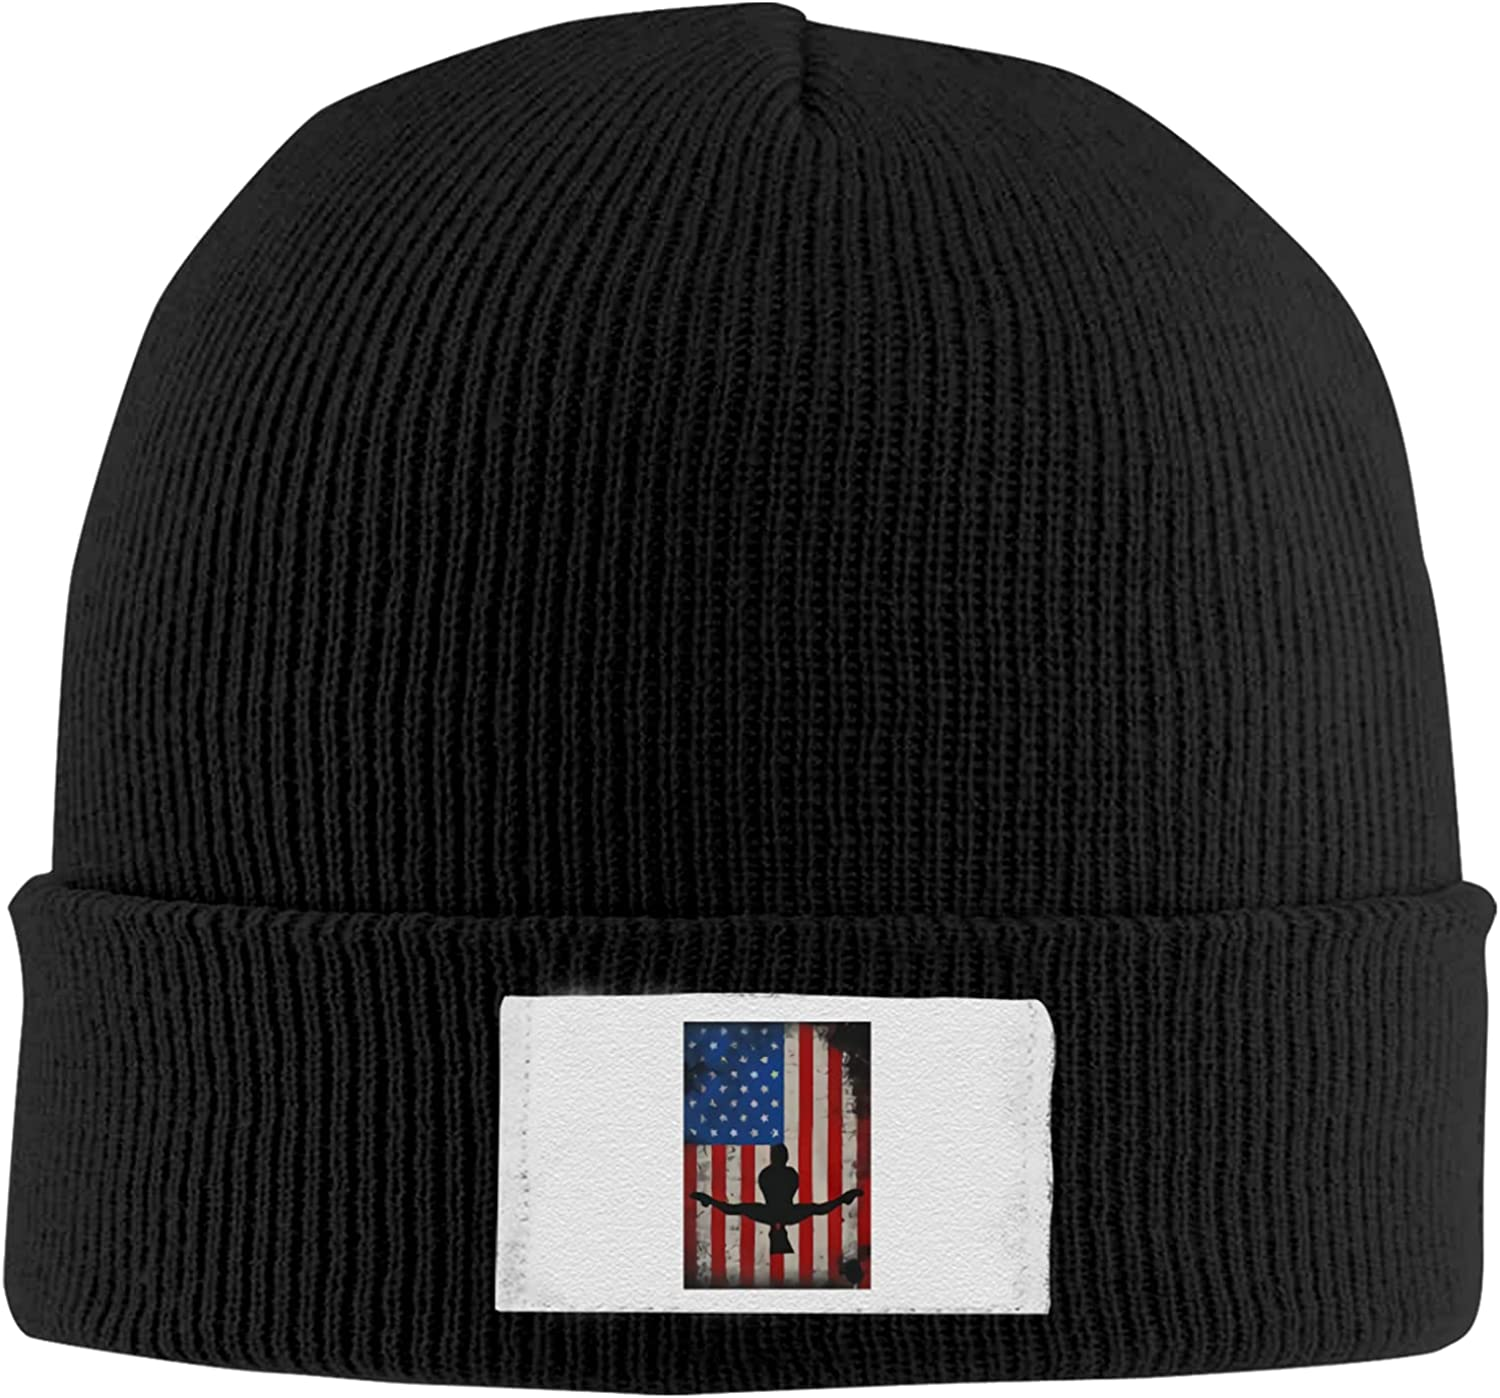 Gymnastic Exercise Athlete American San Diego Mall Flag In stock Trendy Cap Bump Stylish